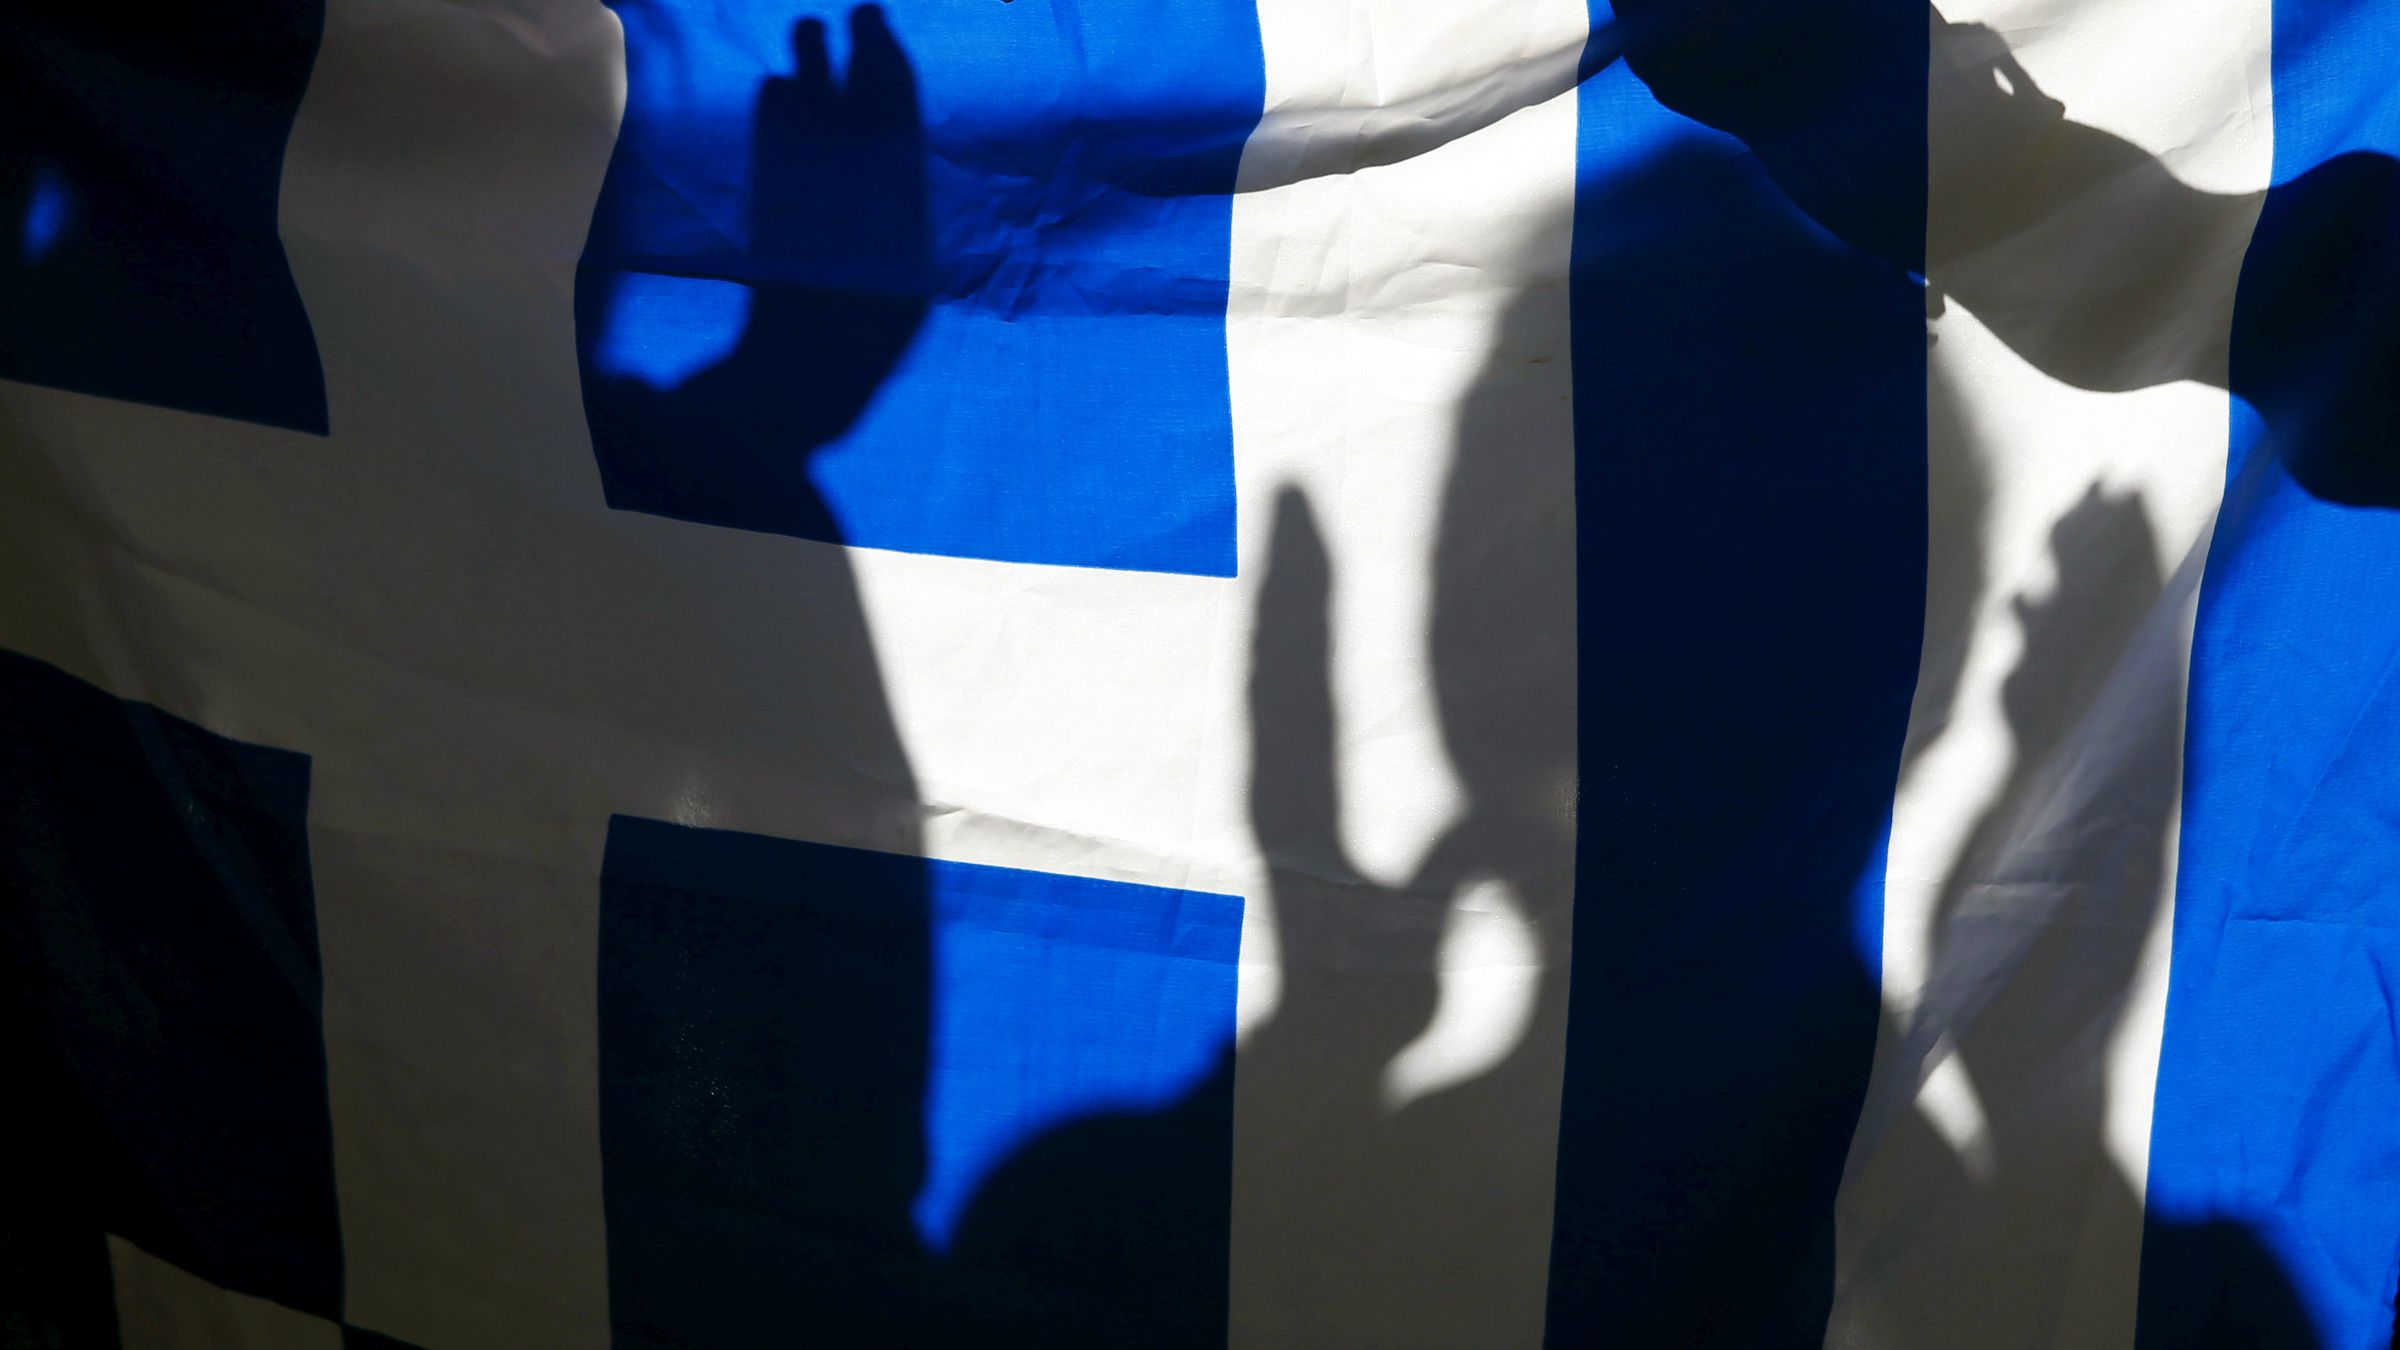 The silhouette of a woman applauding is seen on a Greece flag during a pro-Greece protest in front of the European Union office in Barcelona, Spain, June 29, 2015.